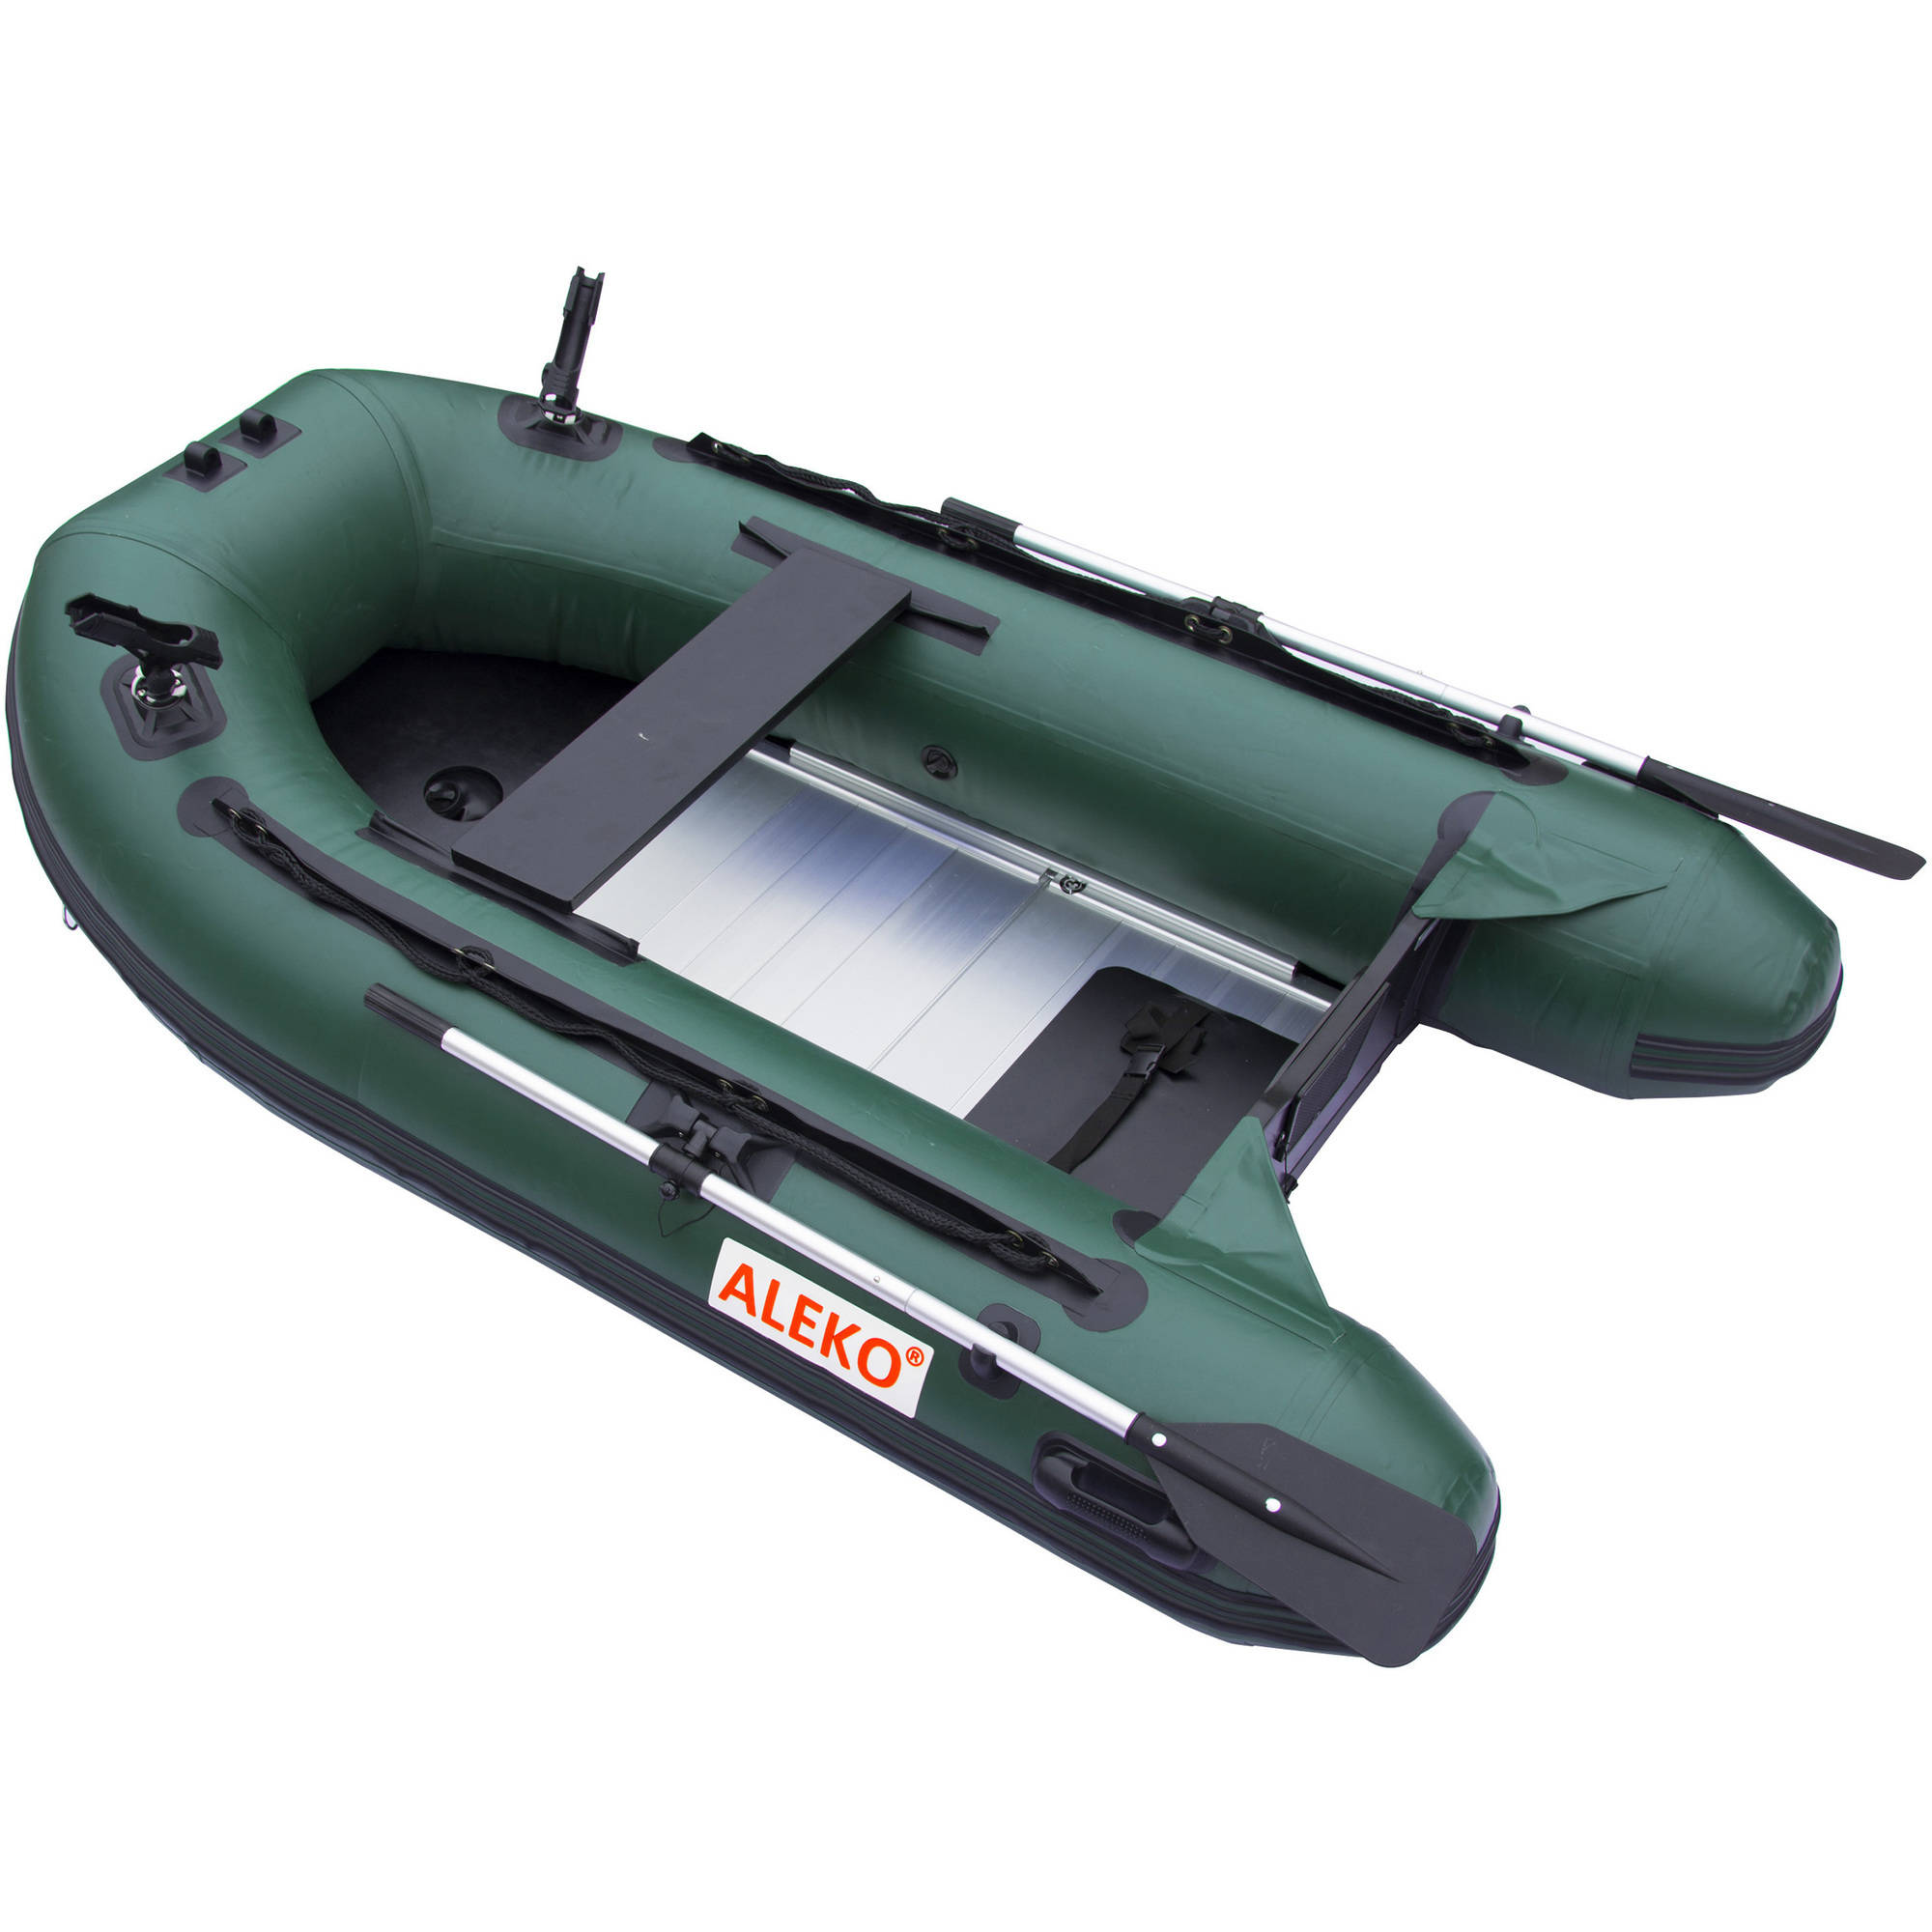 "ALEKO BTF250RBK Inflatable Boat 8'4"" with Aluminum Floor 3-Person Raft Fishing PRO Boat 250CM, Red and Black"